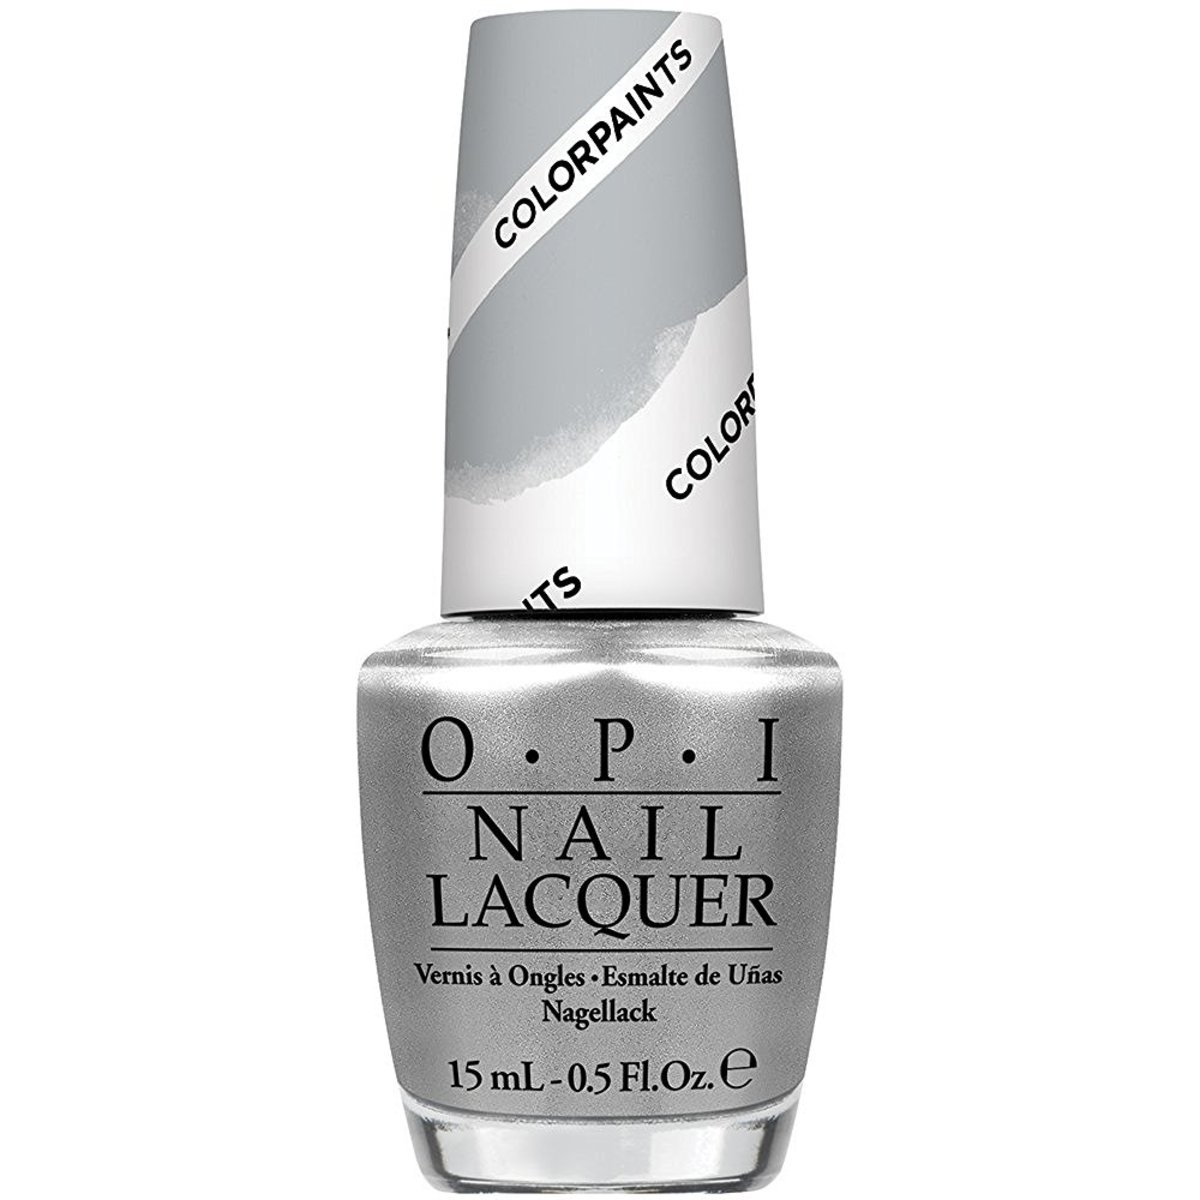 OPI Nail Lacquer, Silver Canvas